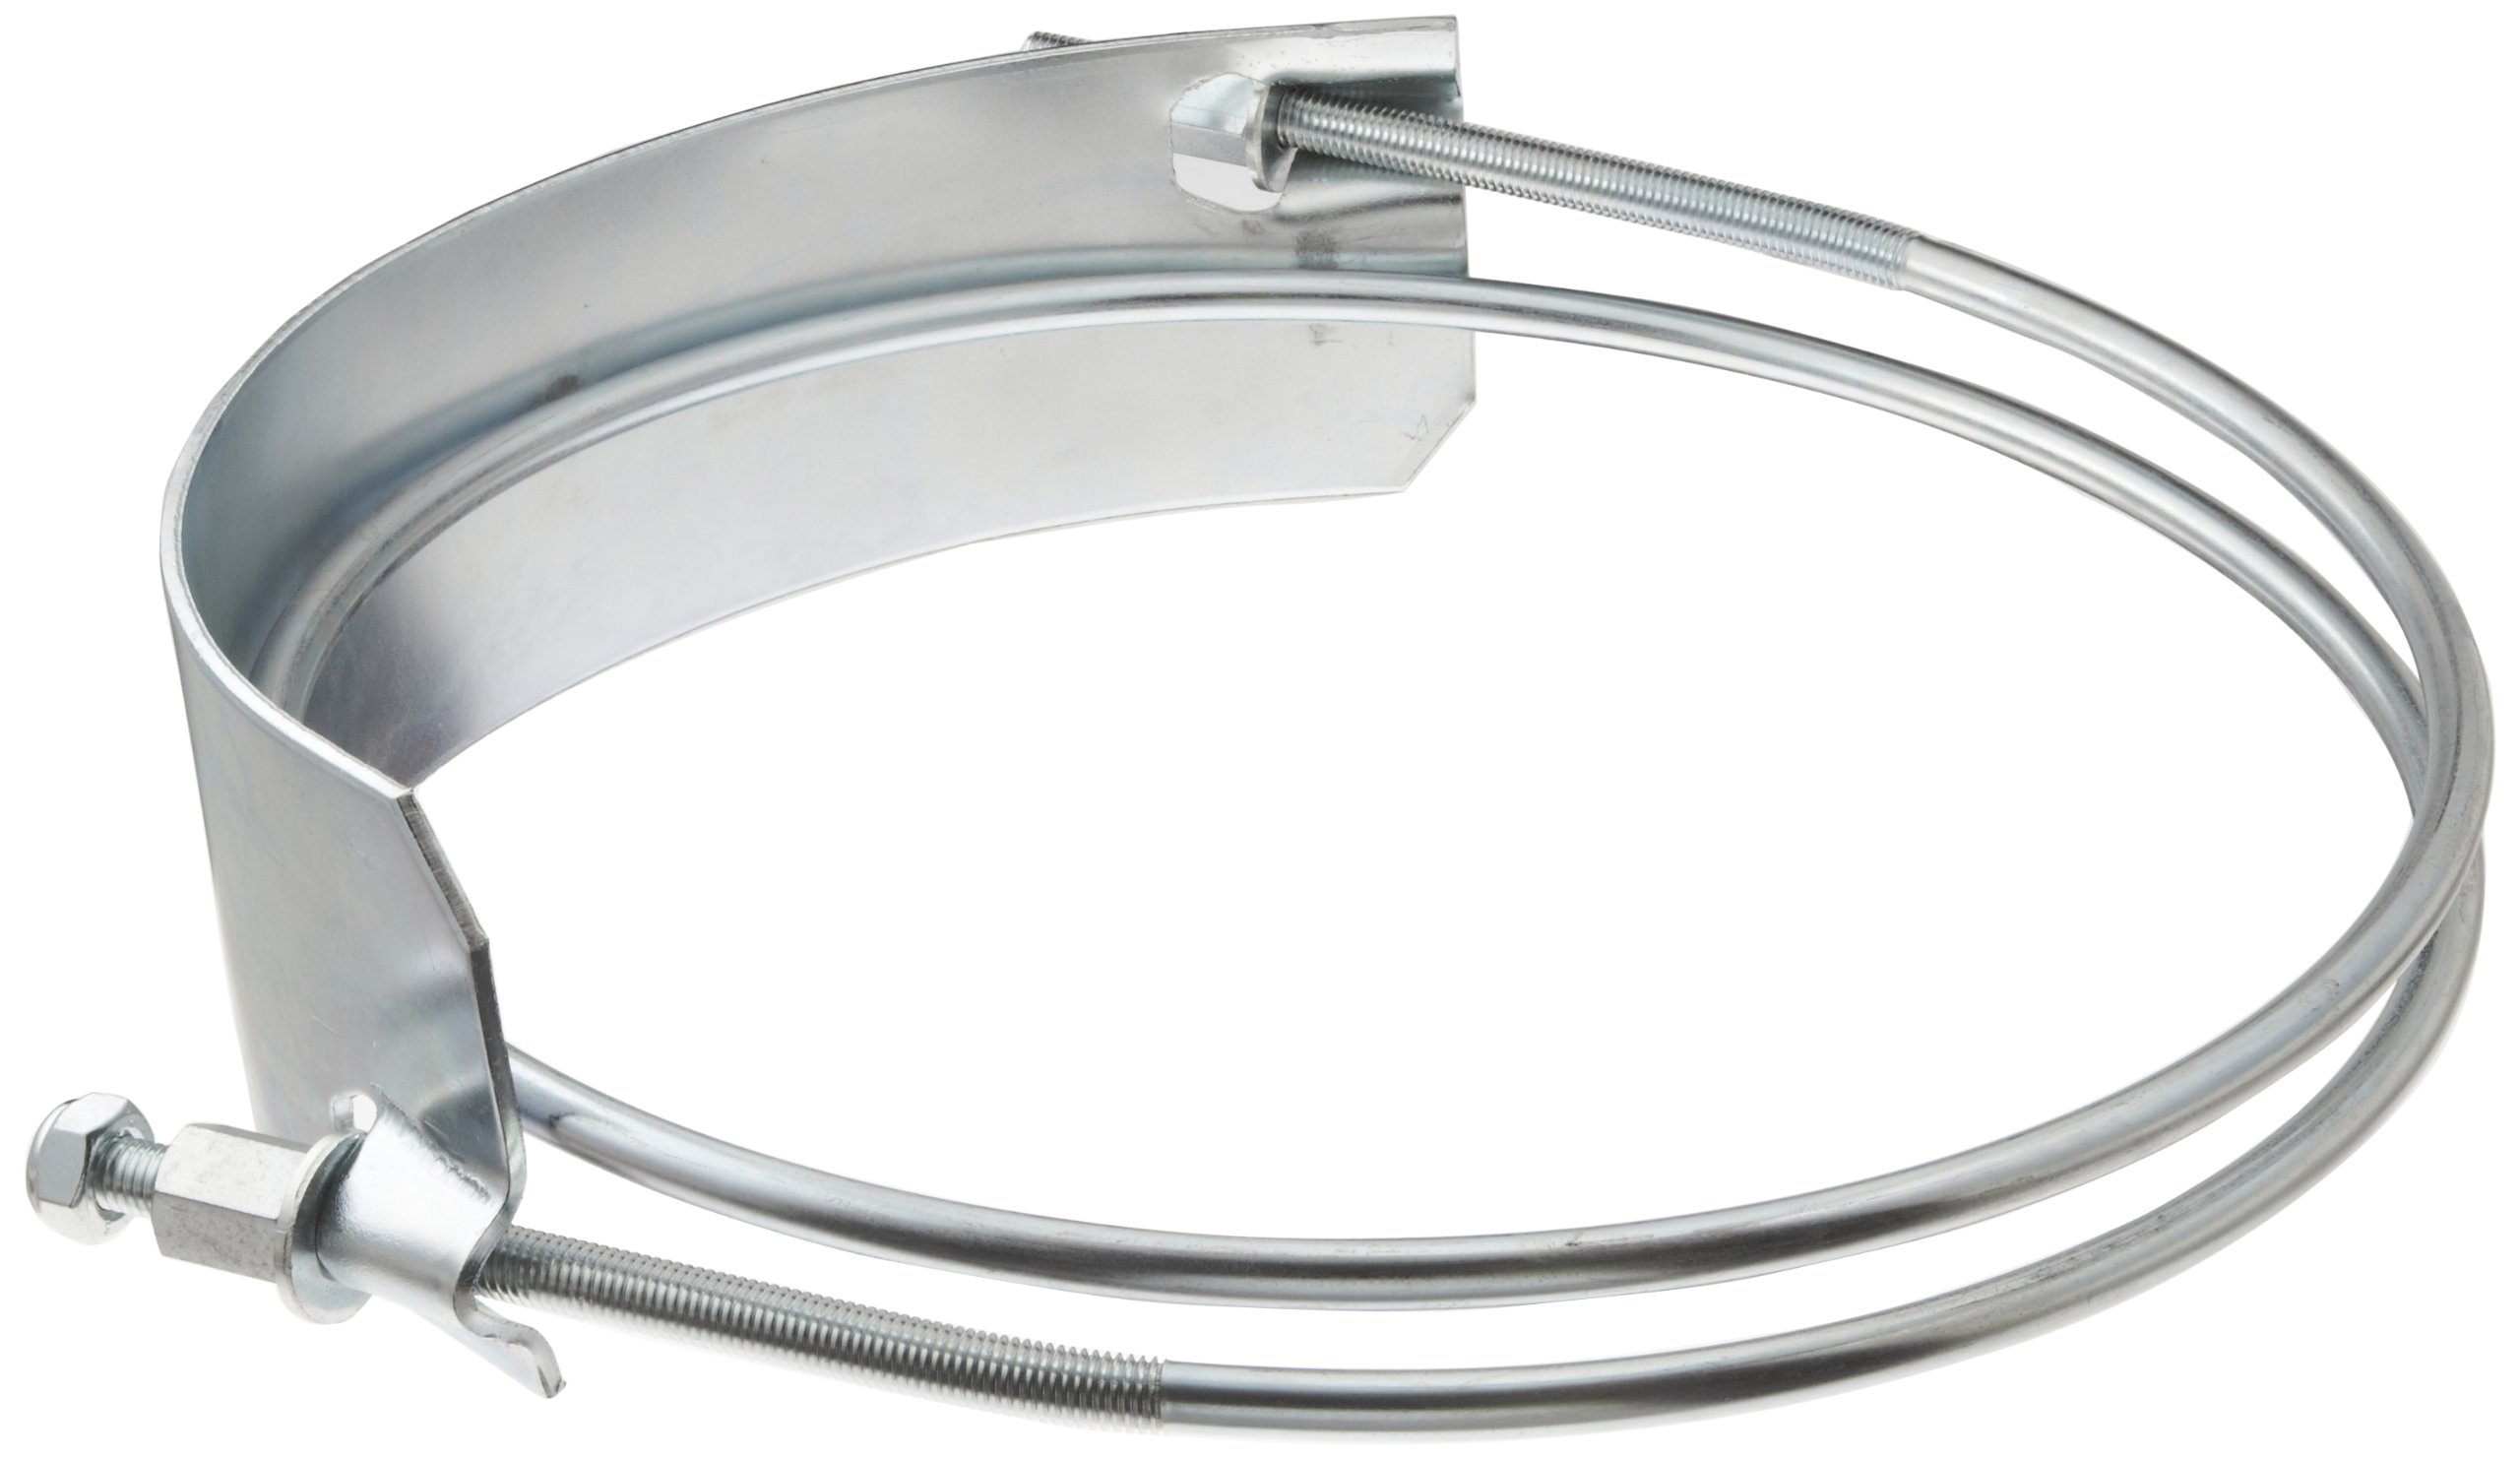 Dixon SC800 Plated Steel Clockwise Wound Right Hand Spiral Clamp, 8'' Hose ID, 8-1/2'' to 9-1/4'' Hose OD Range